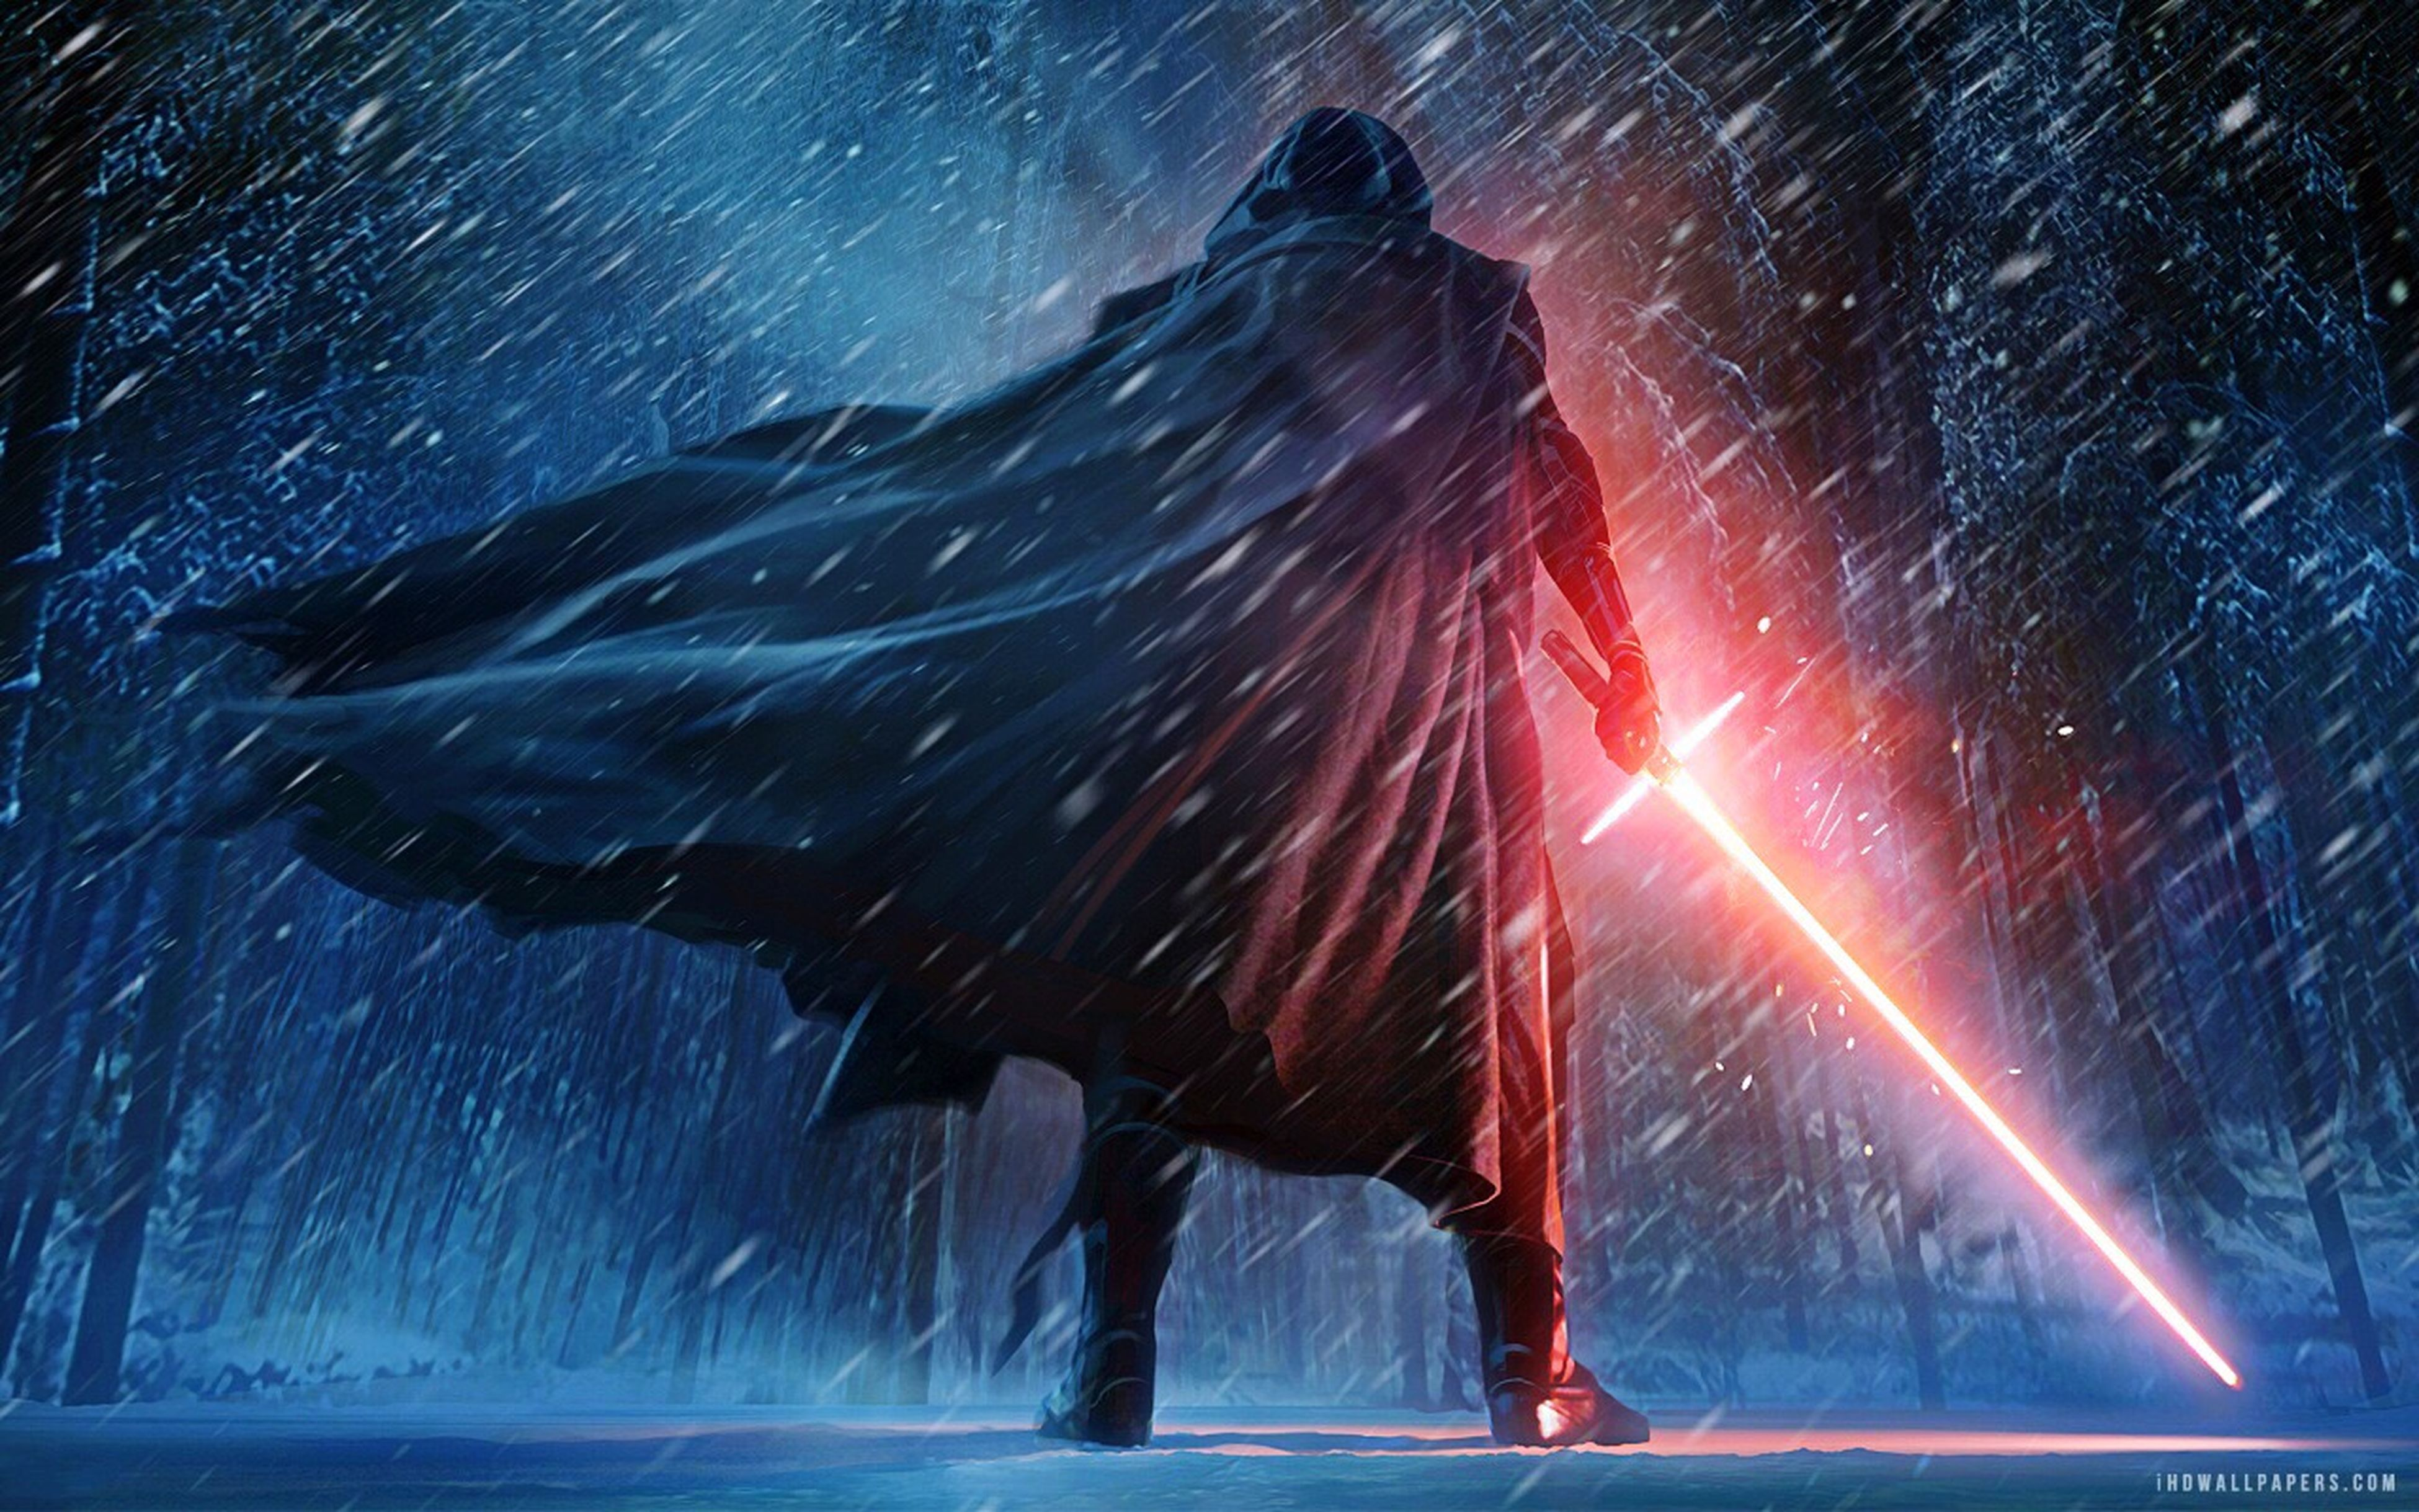 The Force Awakens Star Wars Disney December 18 2015 Release Date